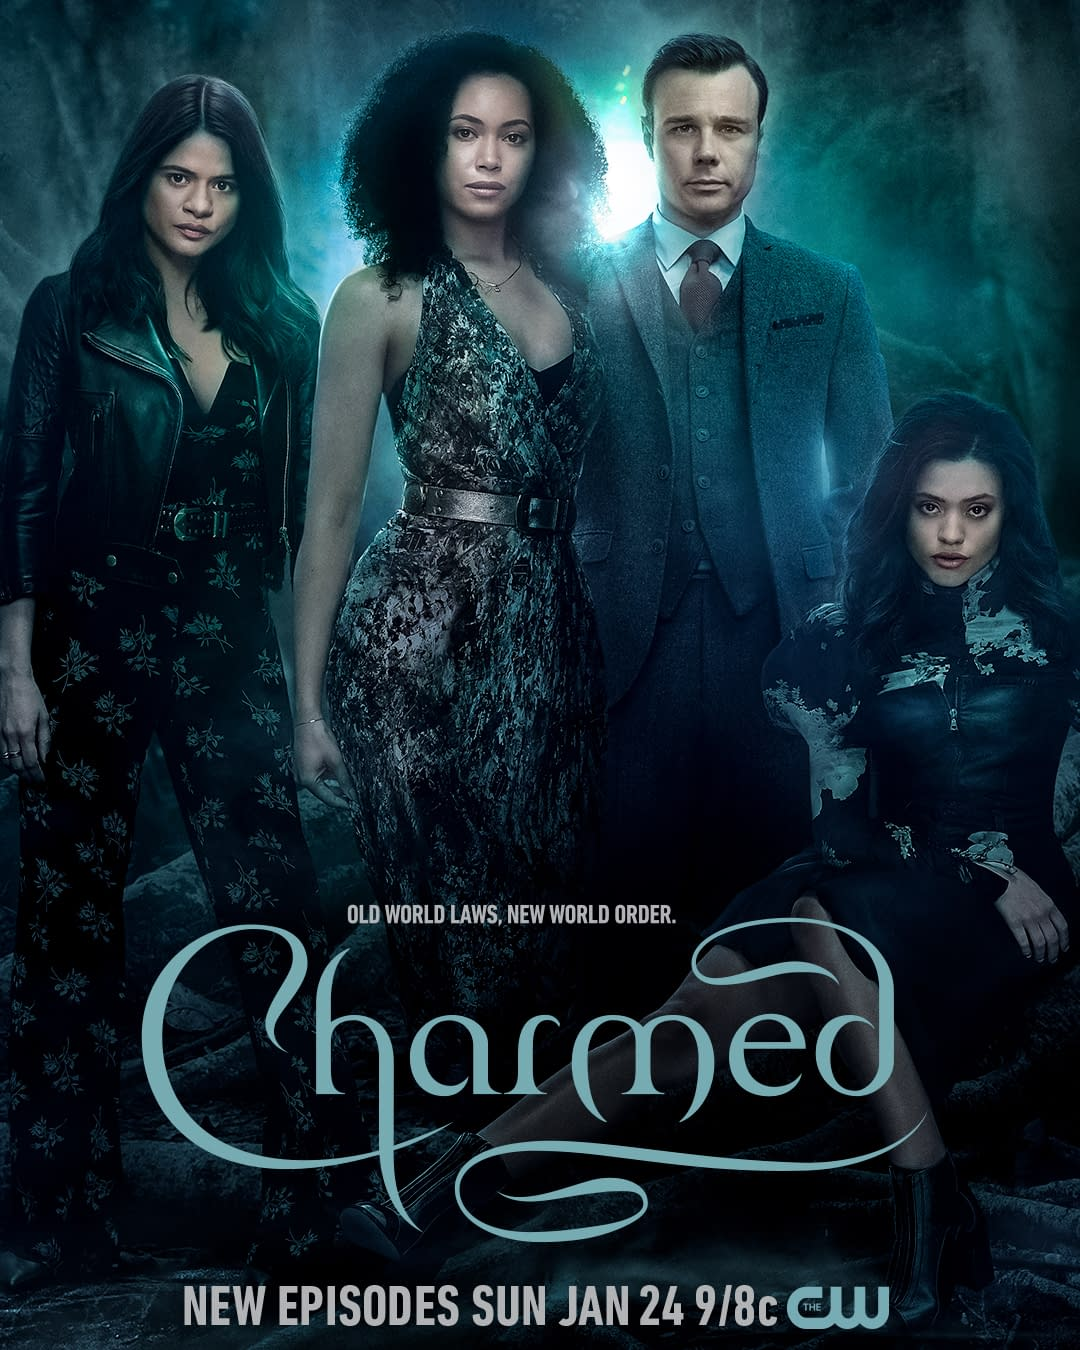 Charmed (2018) - Season 3 Episode 5